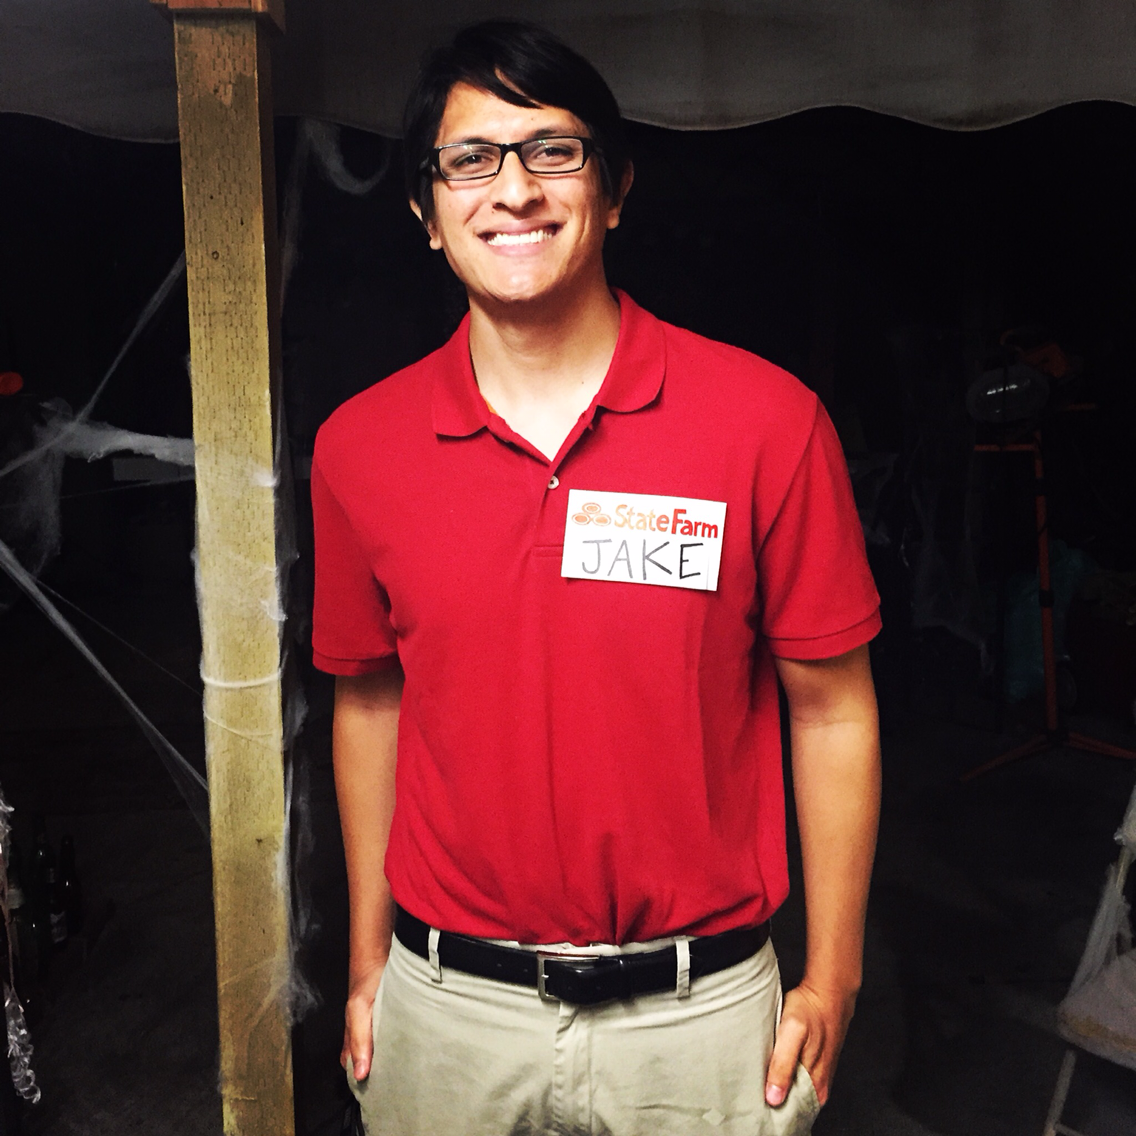 Picks from our london office best halloween costumes of 2016 jake from state farm costume solutioingenieria